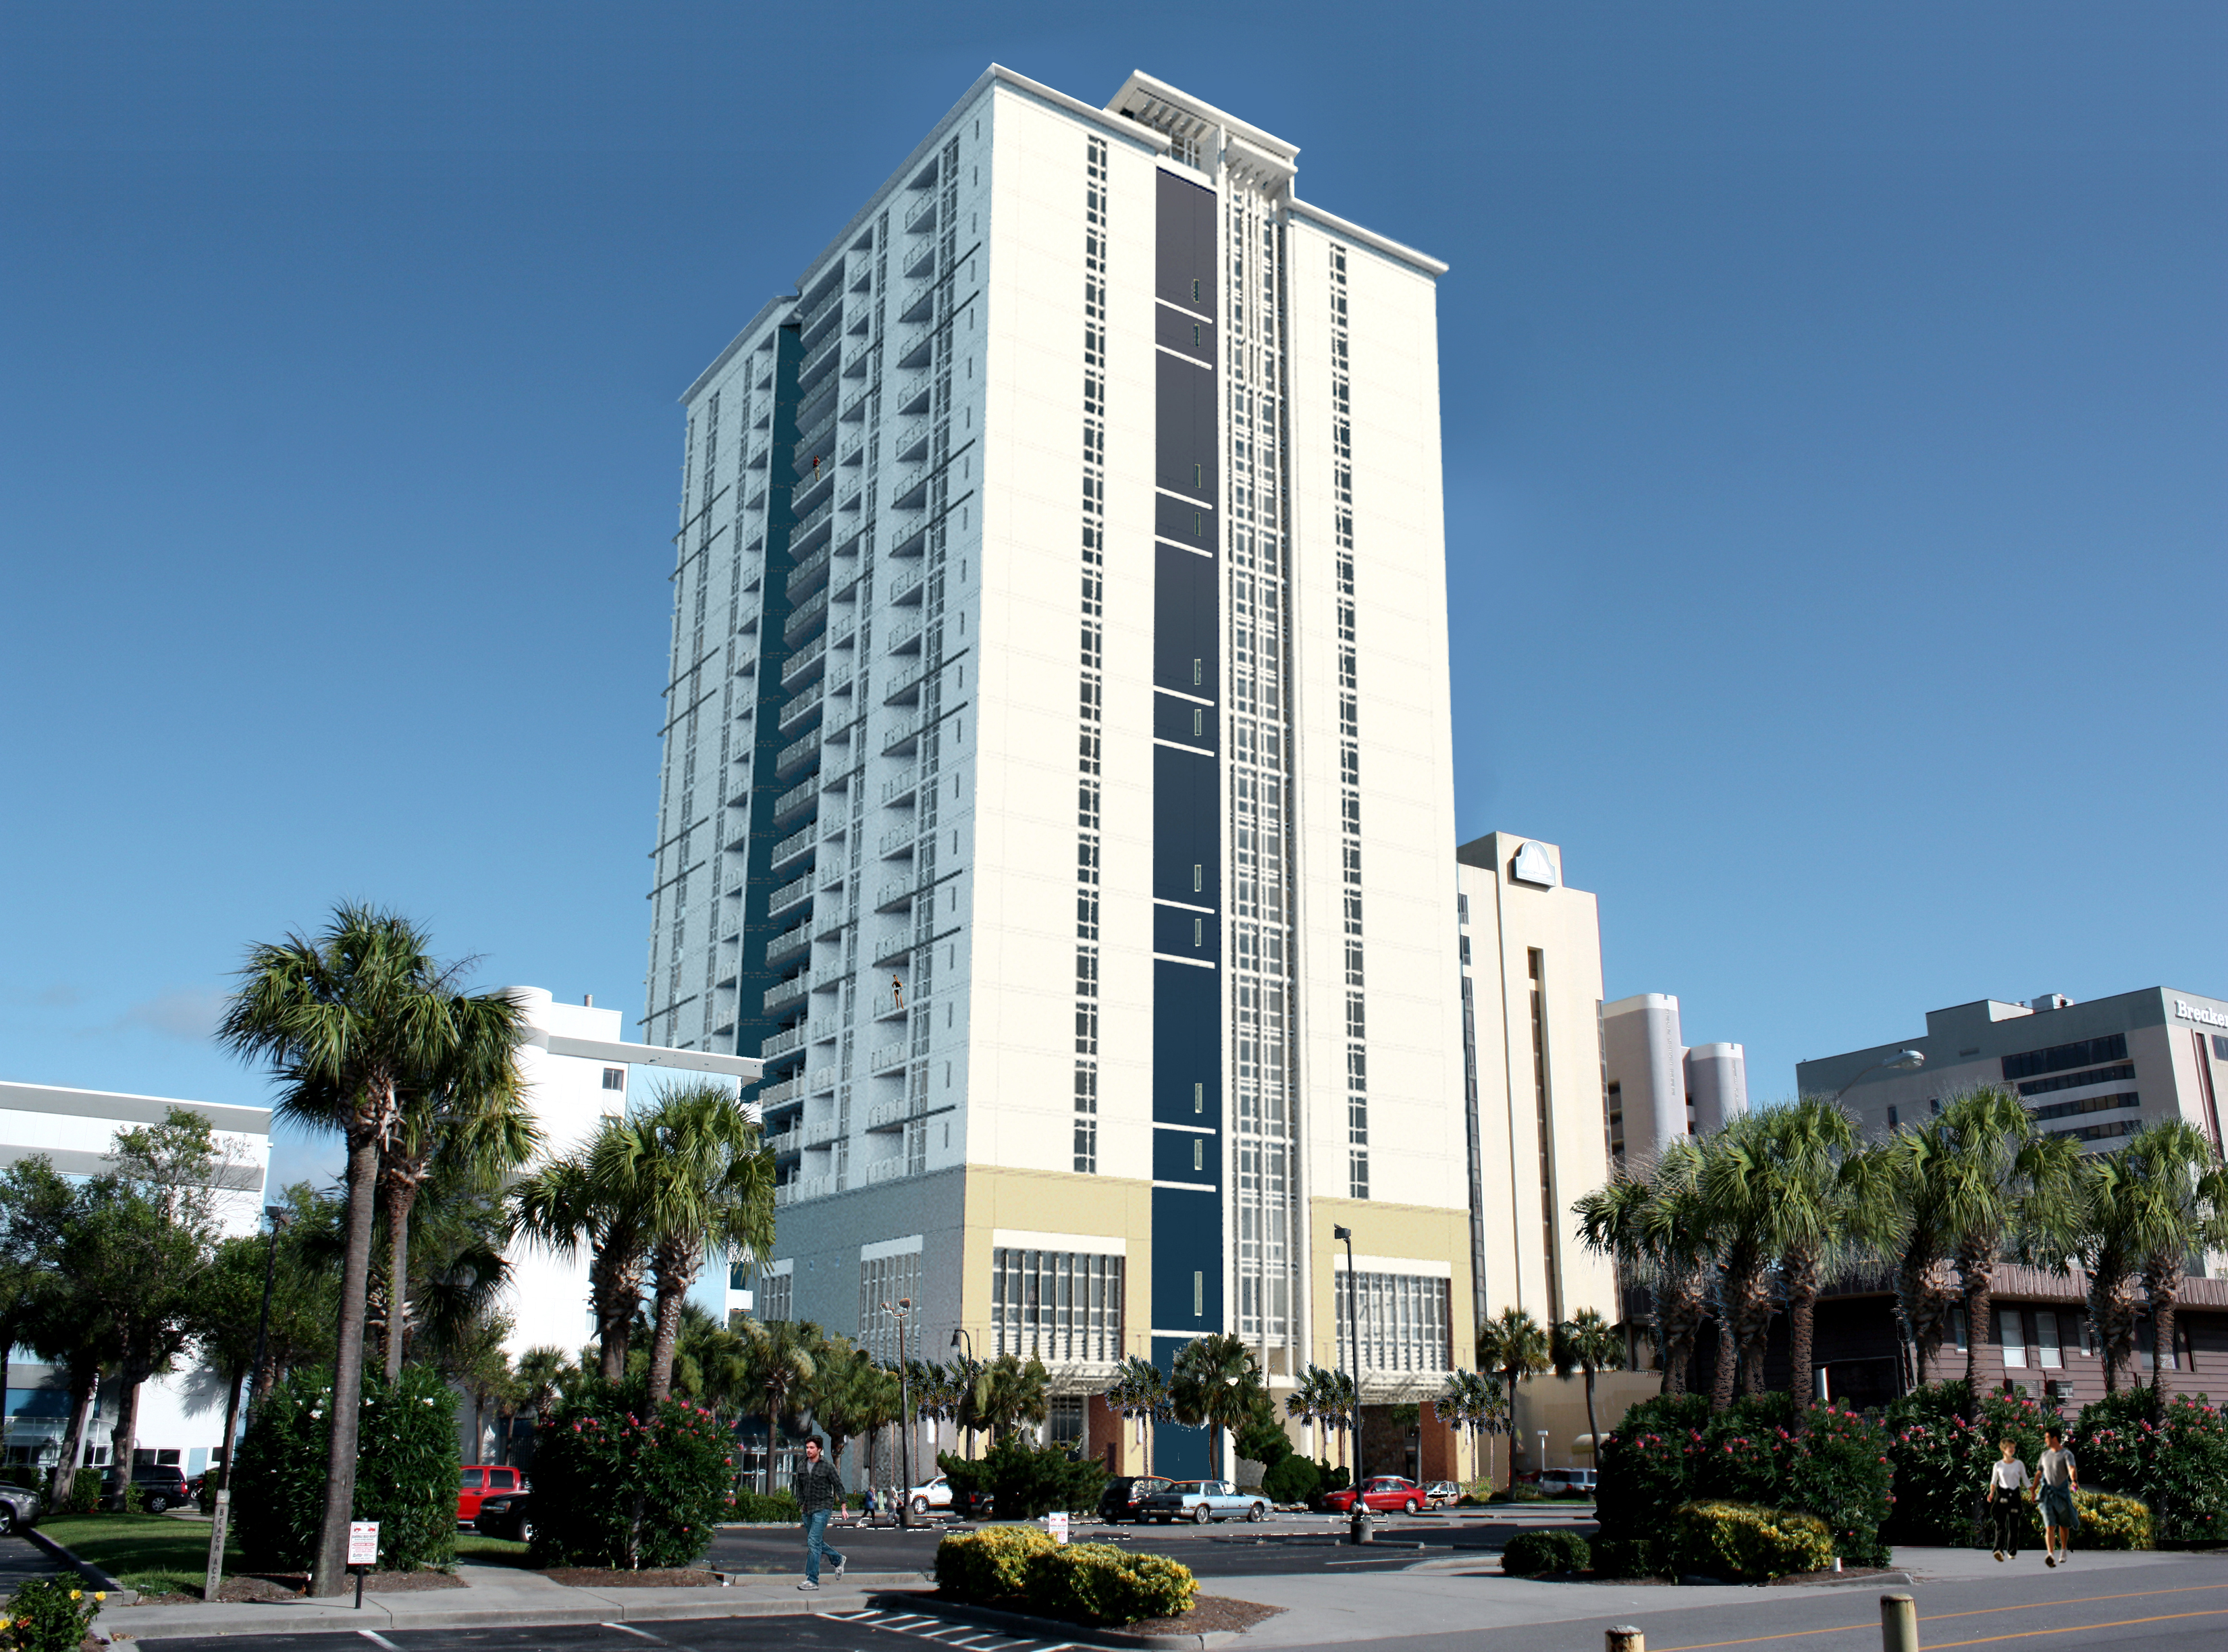 Ocean 22 By Hilton Grand Vacations Club Marks Official Debut In Myrtle Beach South Carolina Business Wire